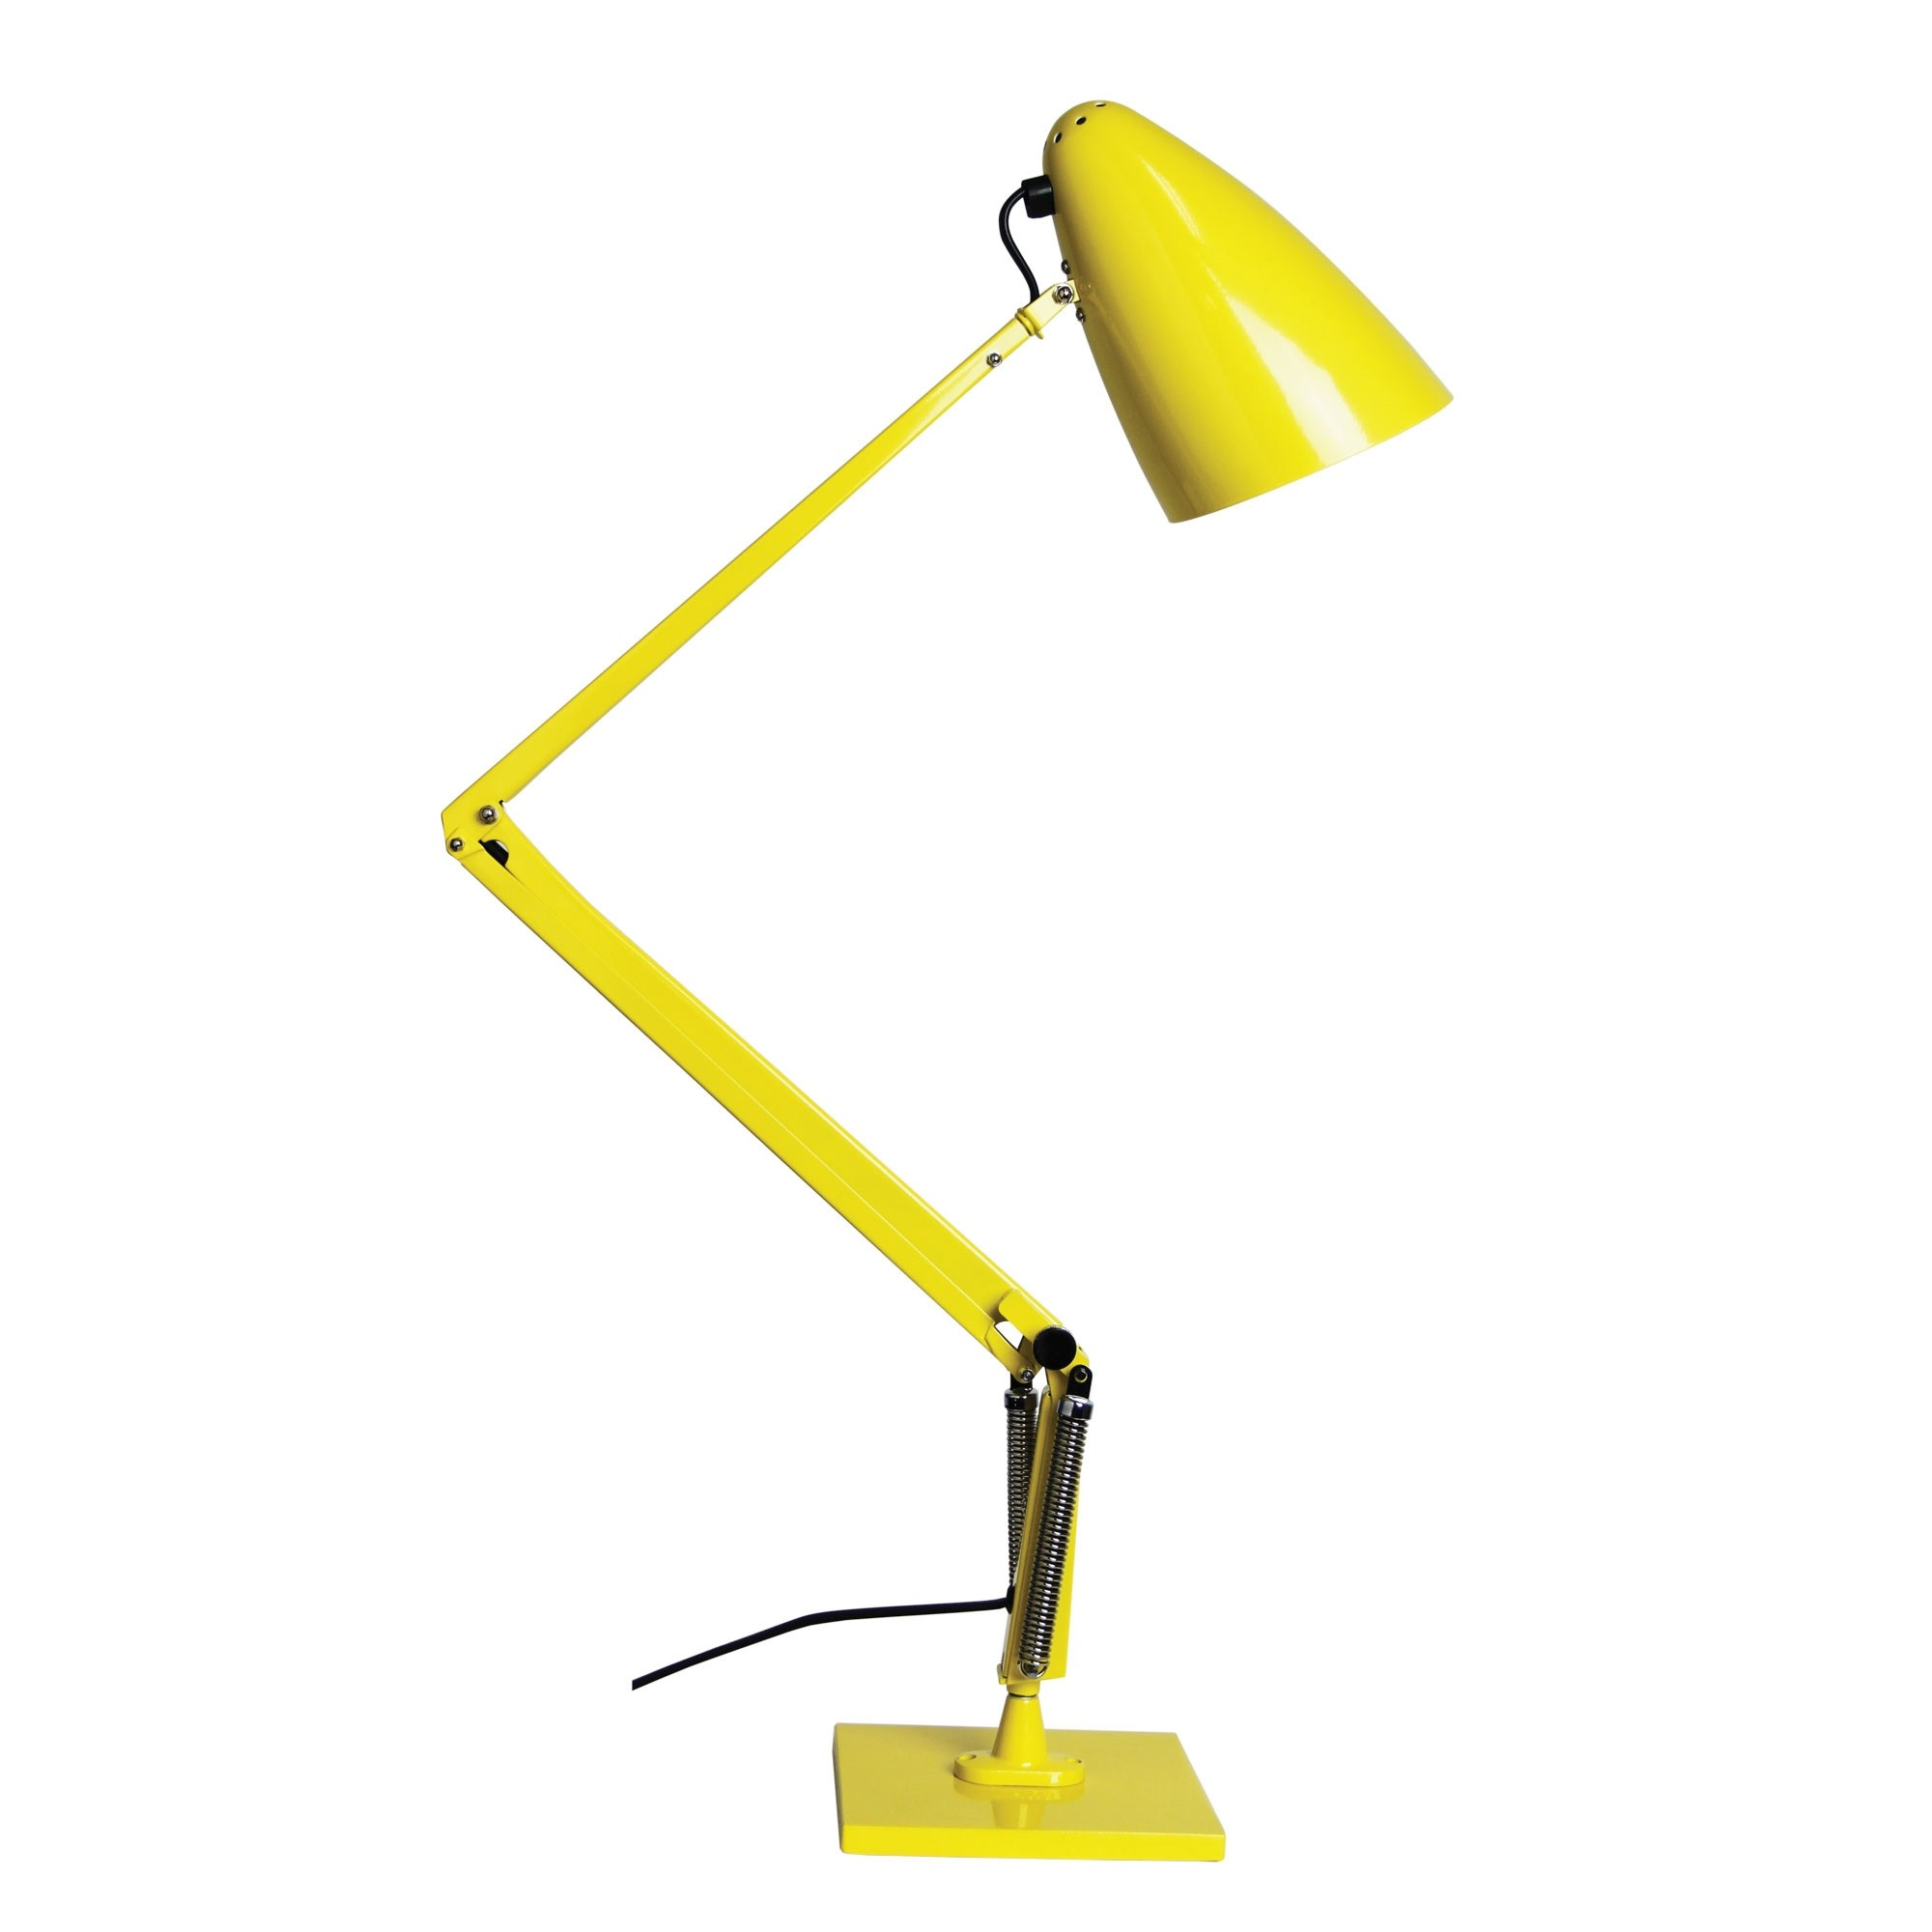 Lift Reproduction Anglepoise Desk Lamp, Yellow